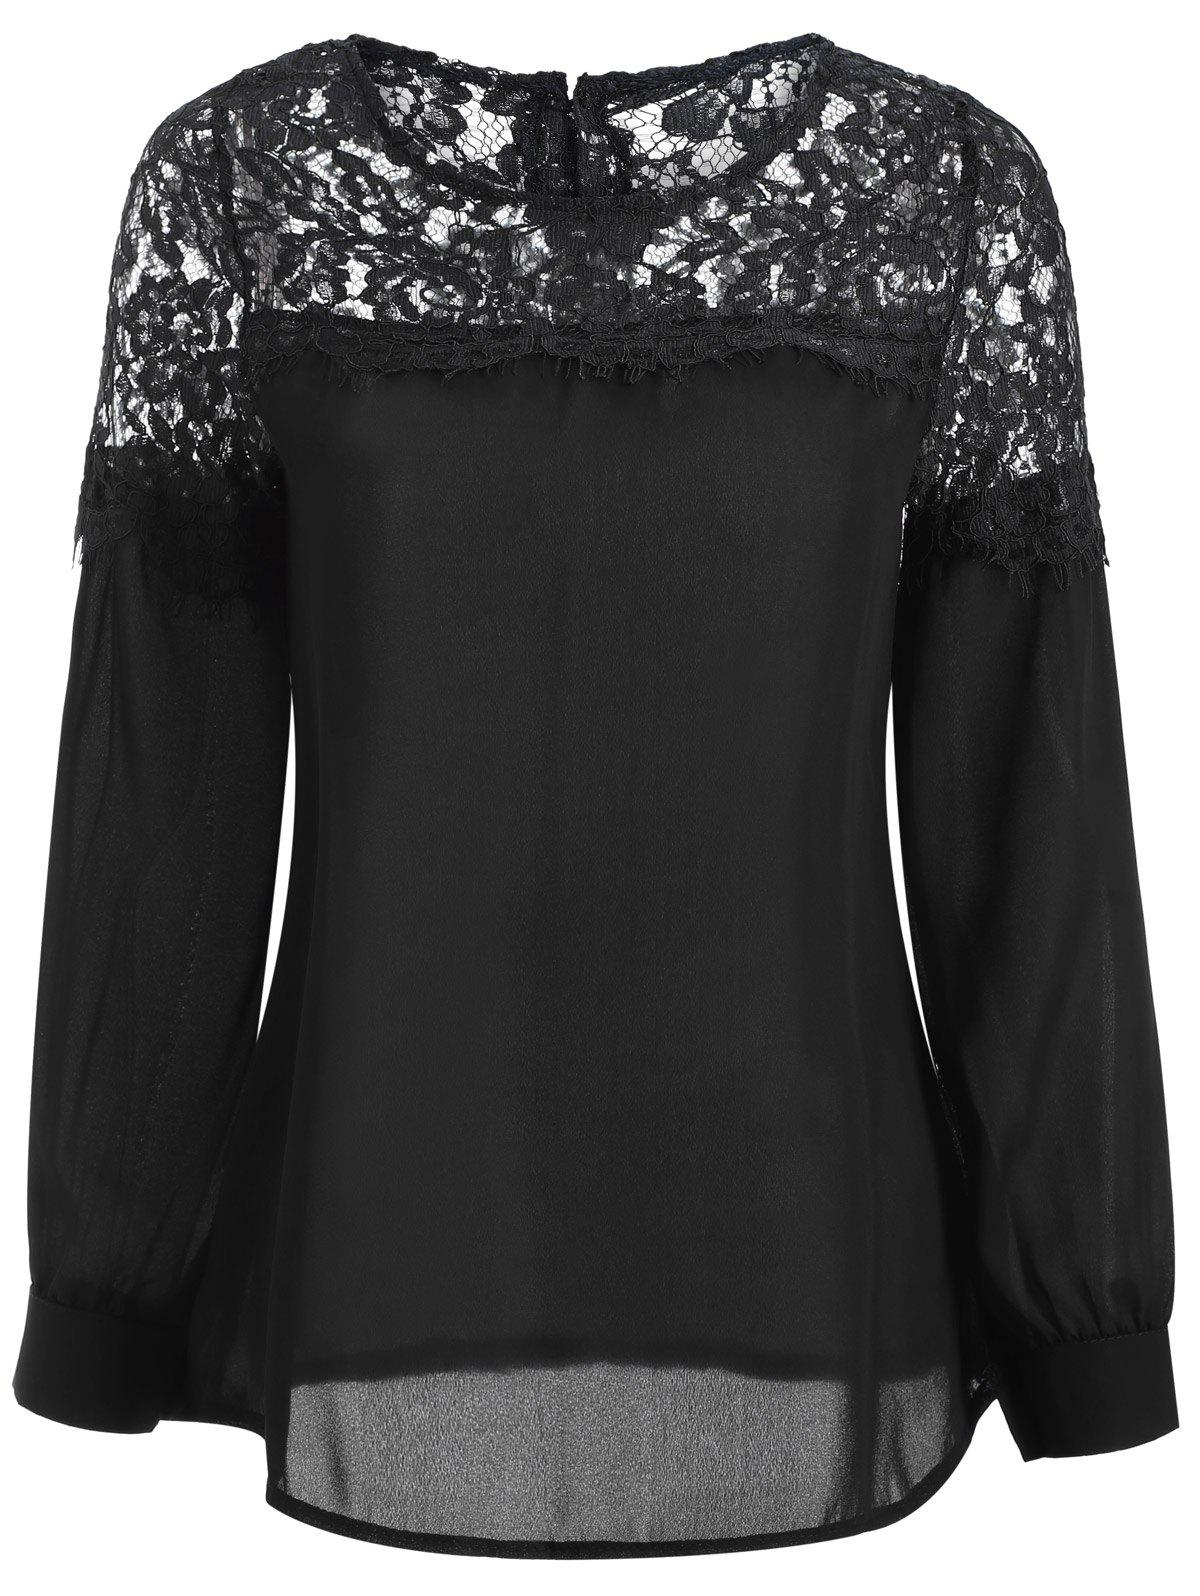 Sheer Lace Yoke Blouse - BLACK M